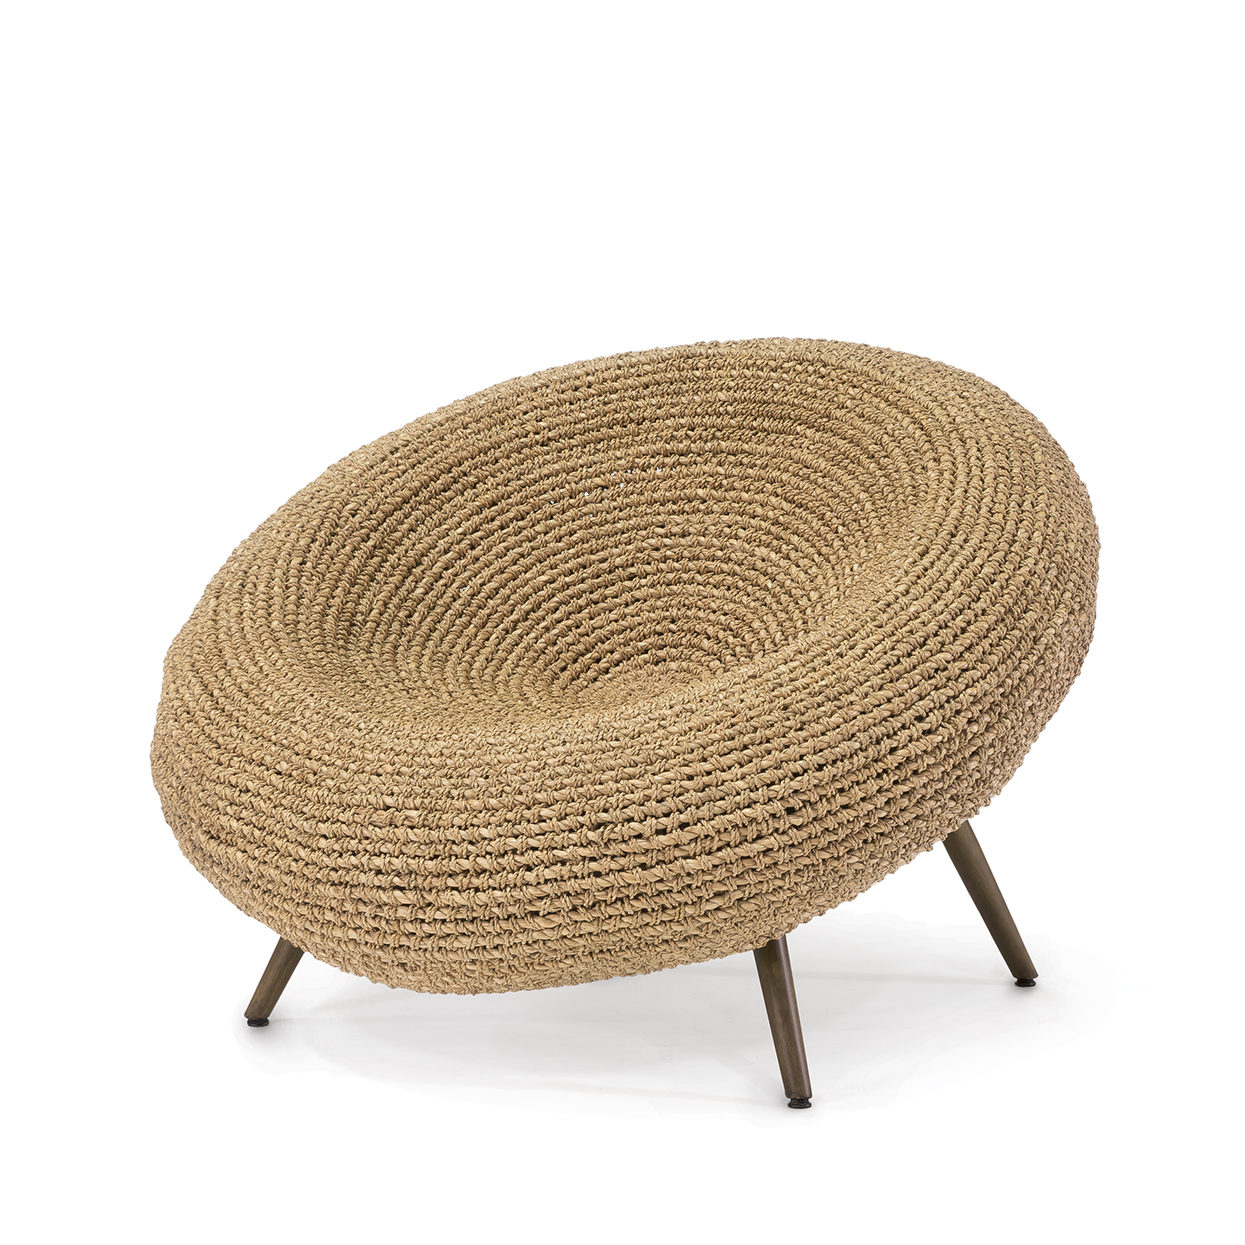 Seagrass Rope Bowl Chair  sc 1 st  Mecox Gardens & Seagrass Rope Bowl Chair - Mecox Gardens